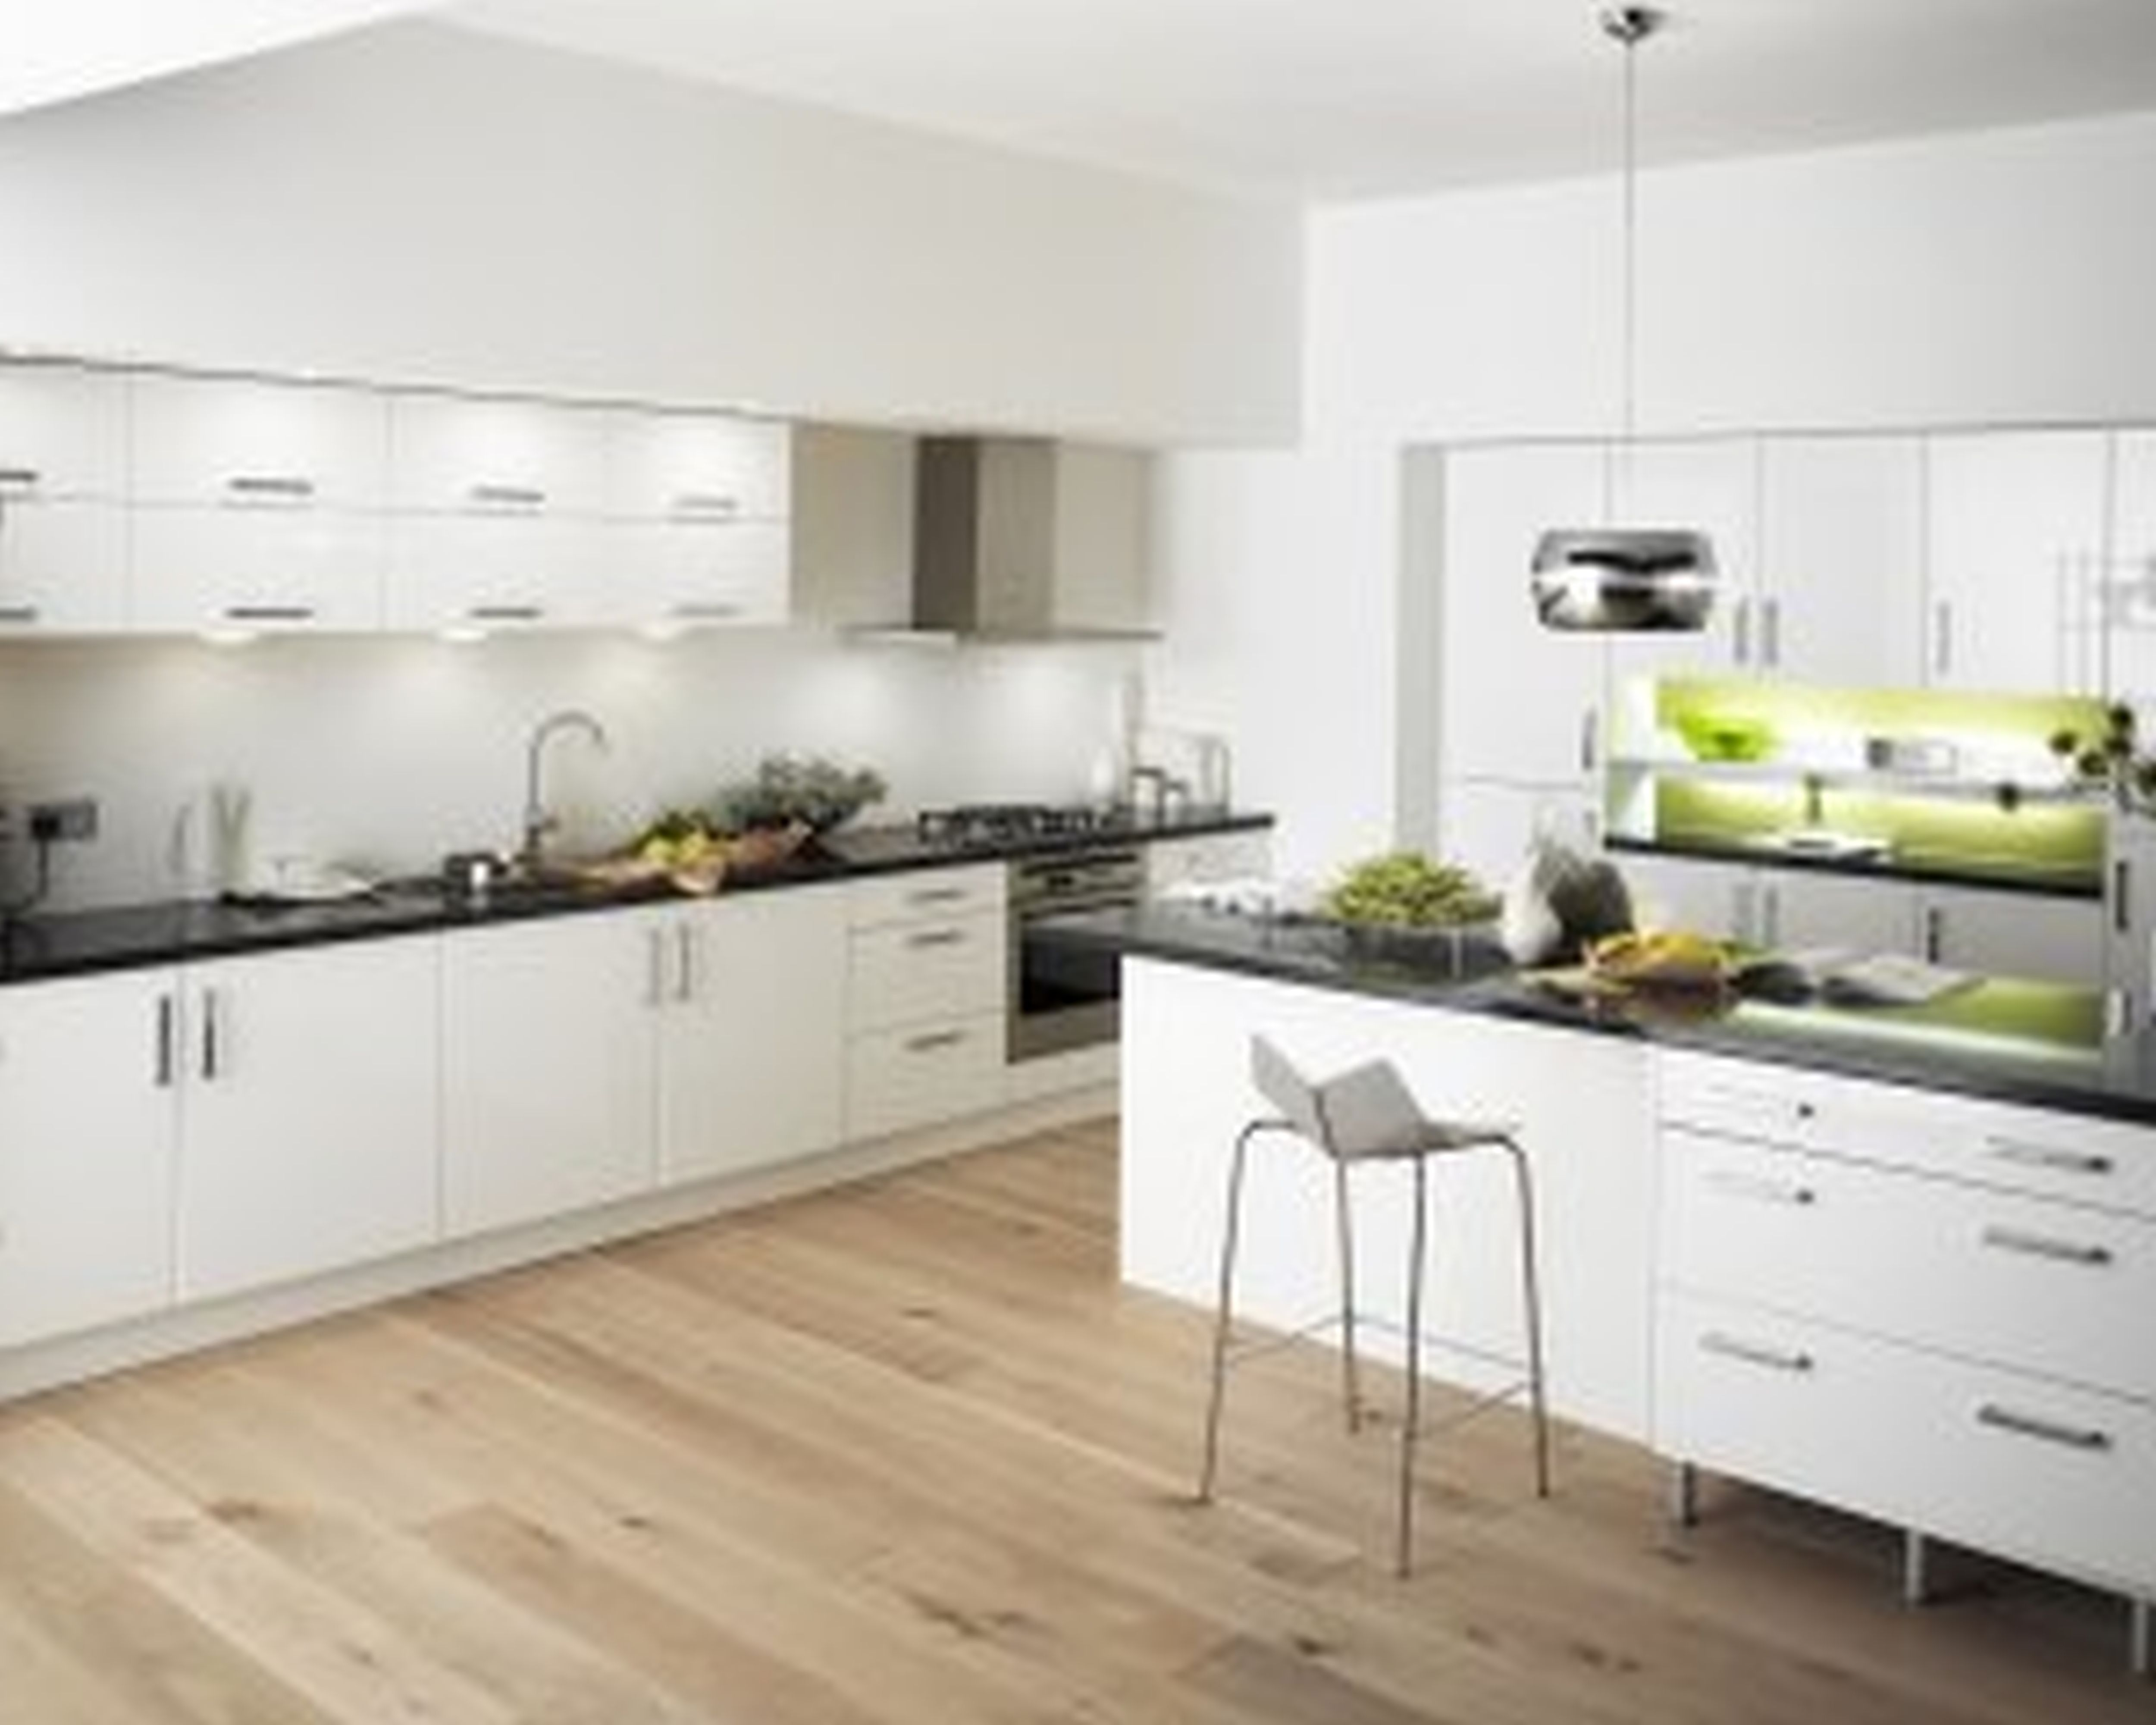 design modern home kitchen ideas with white wooden cabinets pictures ...